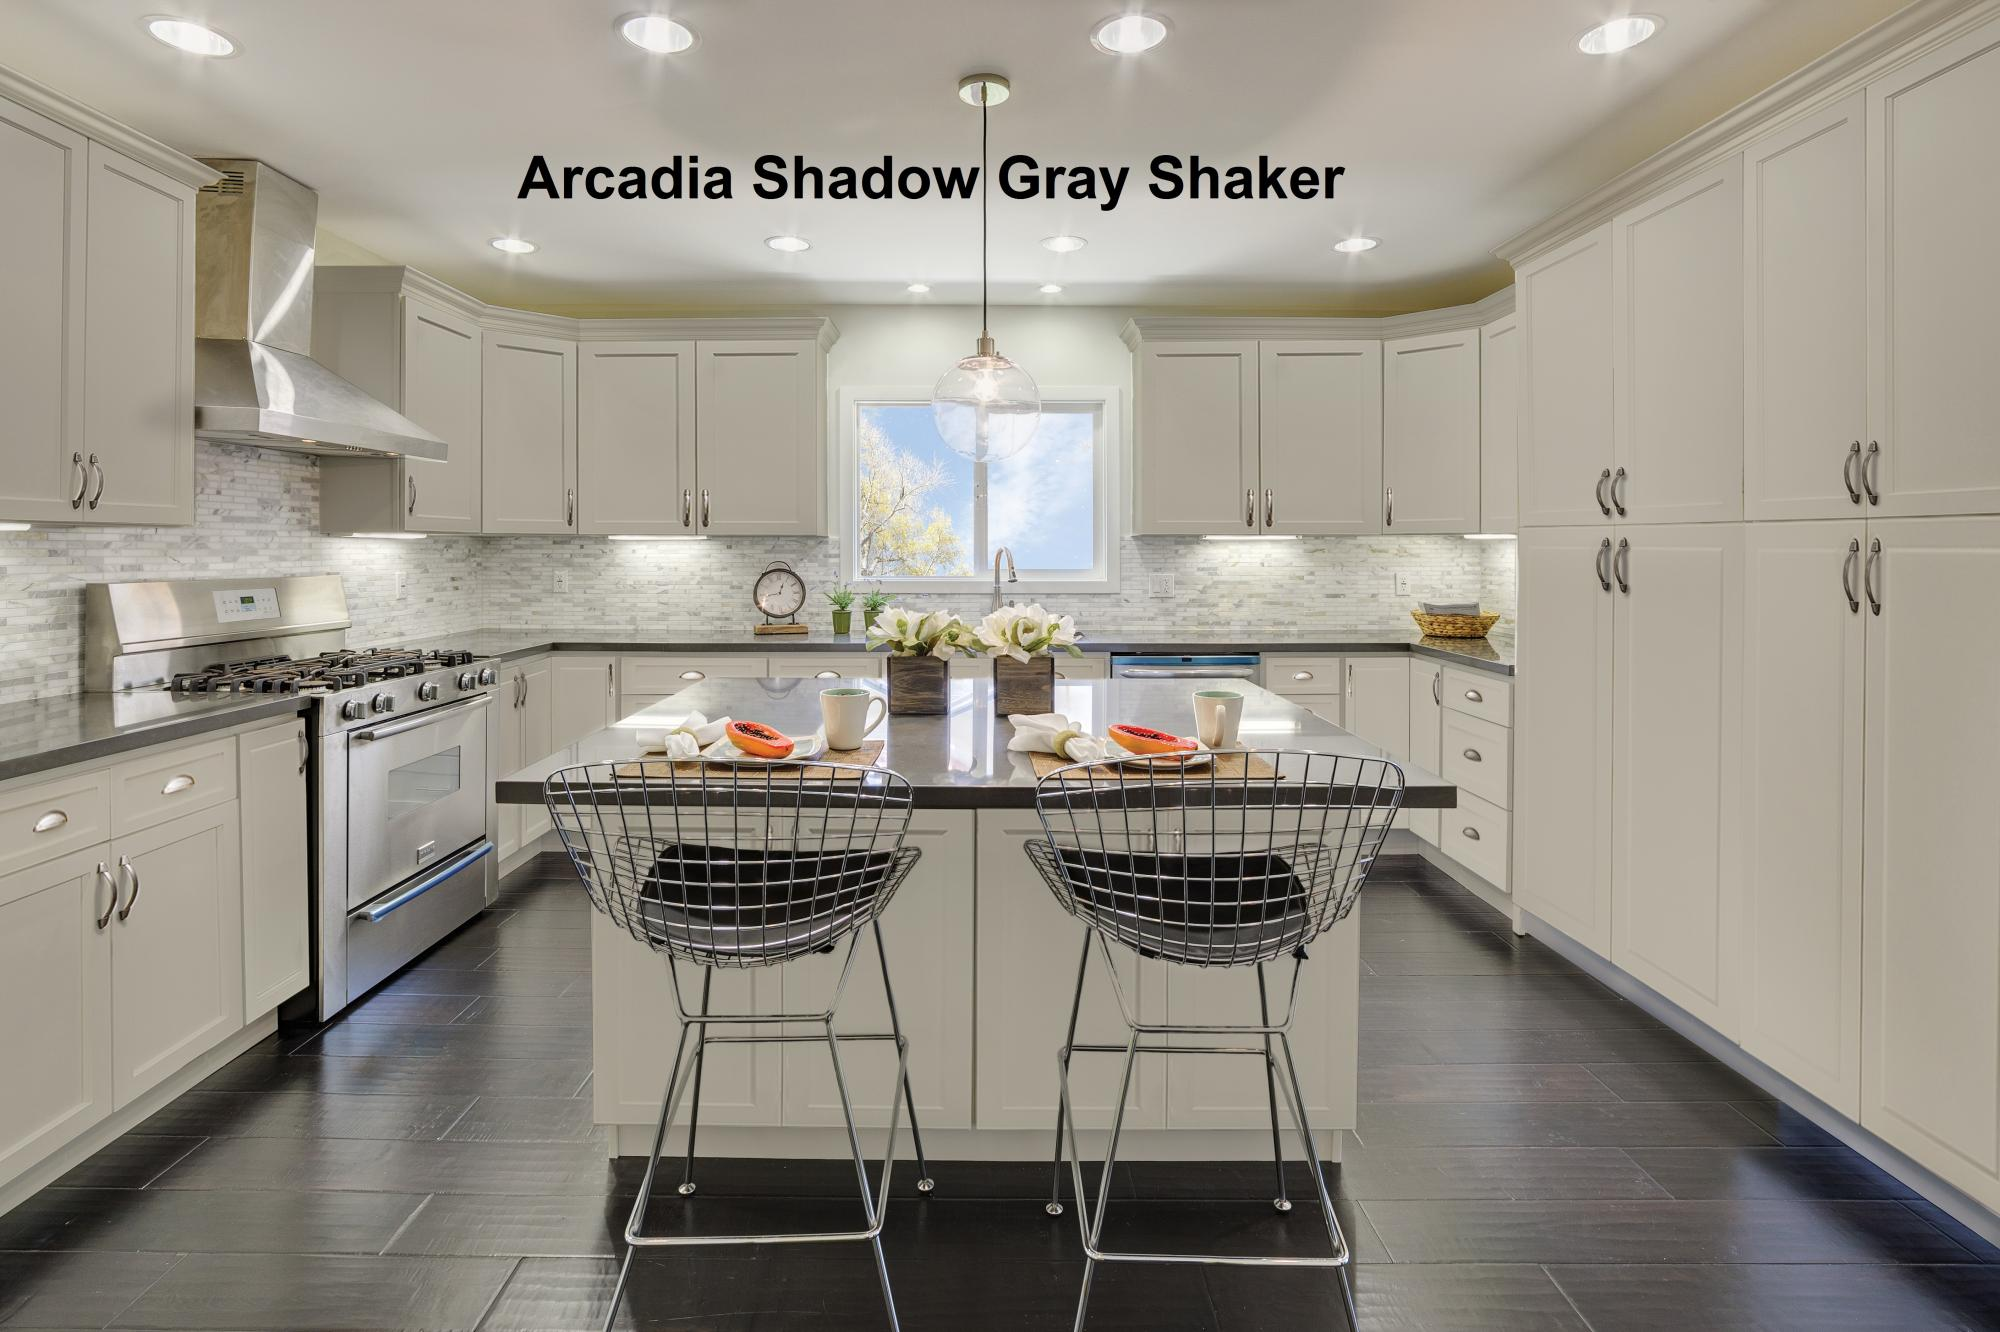 Arcadia_Shadow_Gray_S39378.jpg